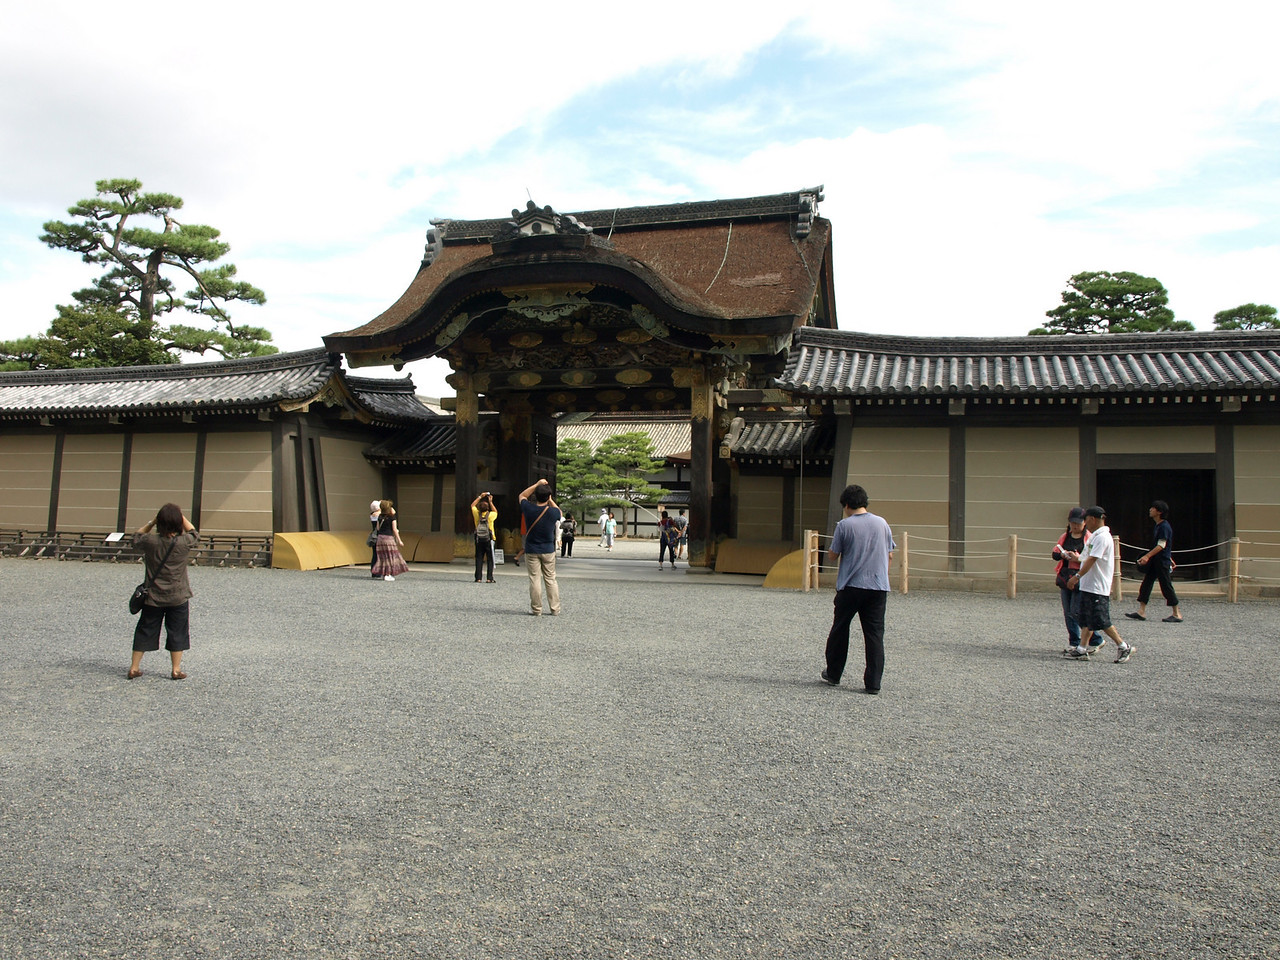 Approaching the inner Karamon Gate